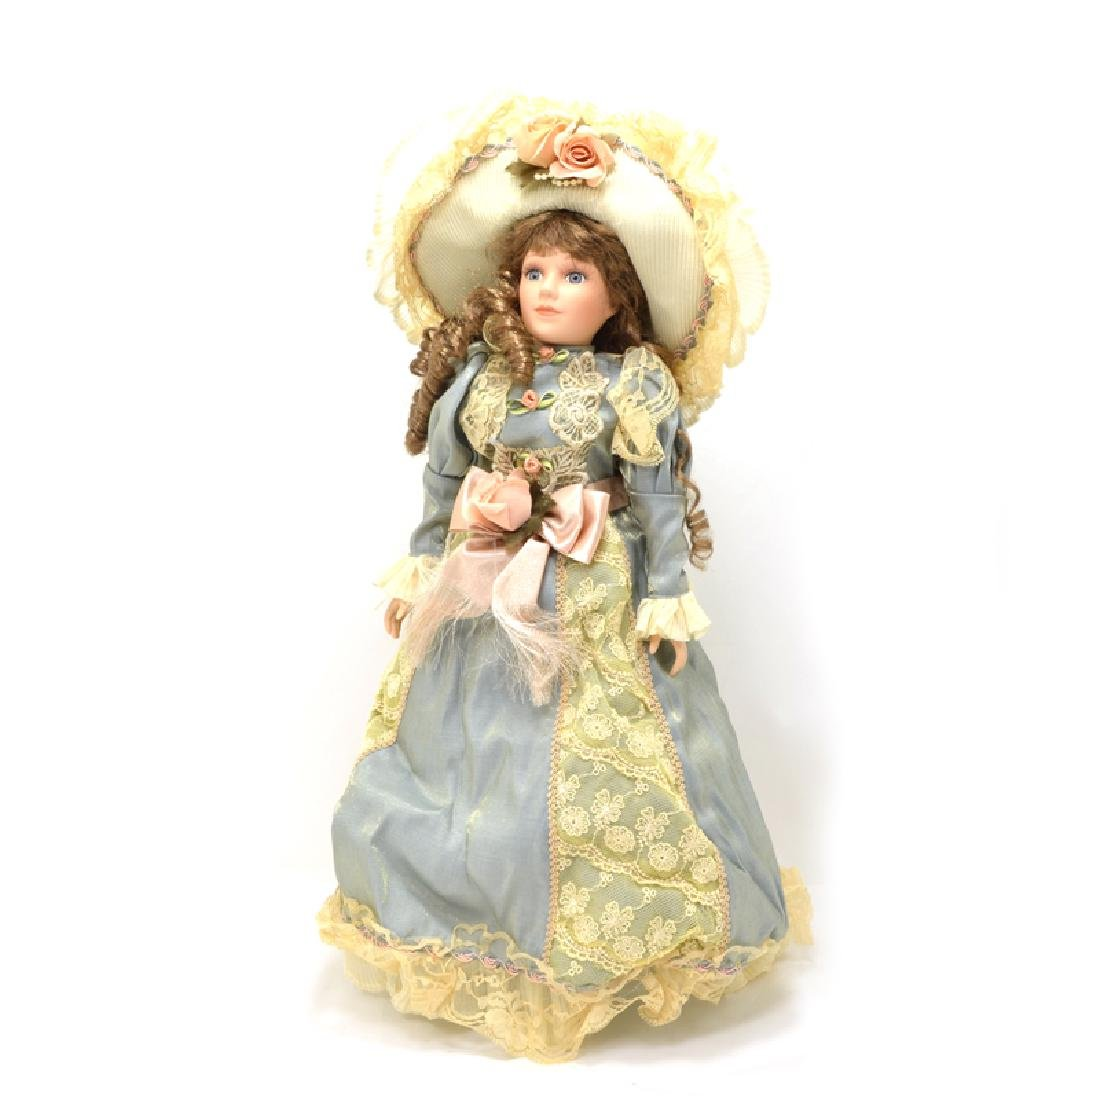 18 Inch Handpainted Porcelain Doll